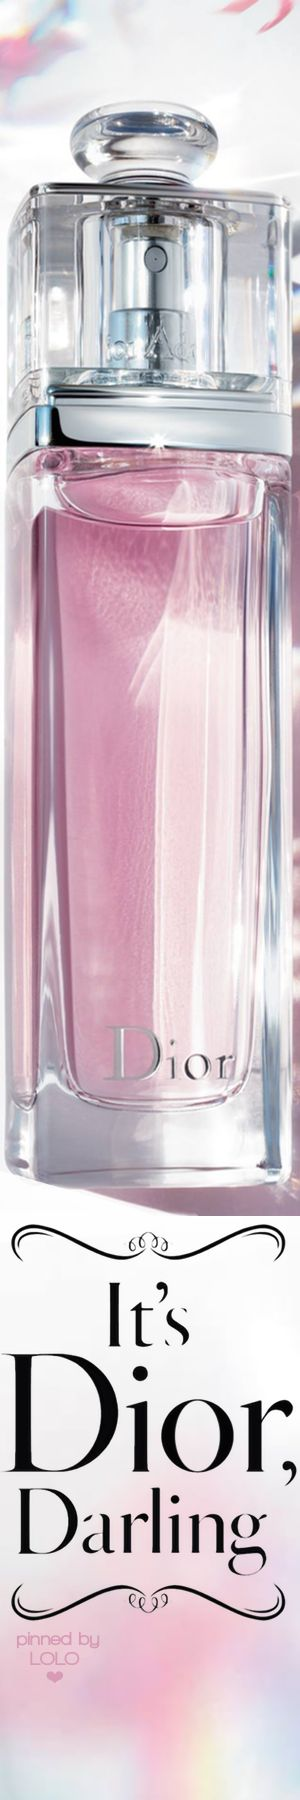 It's Dior Darling | House of Beccaria~